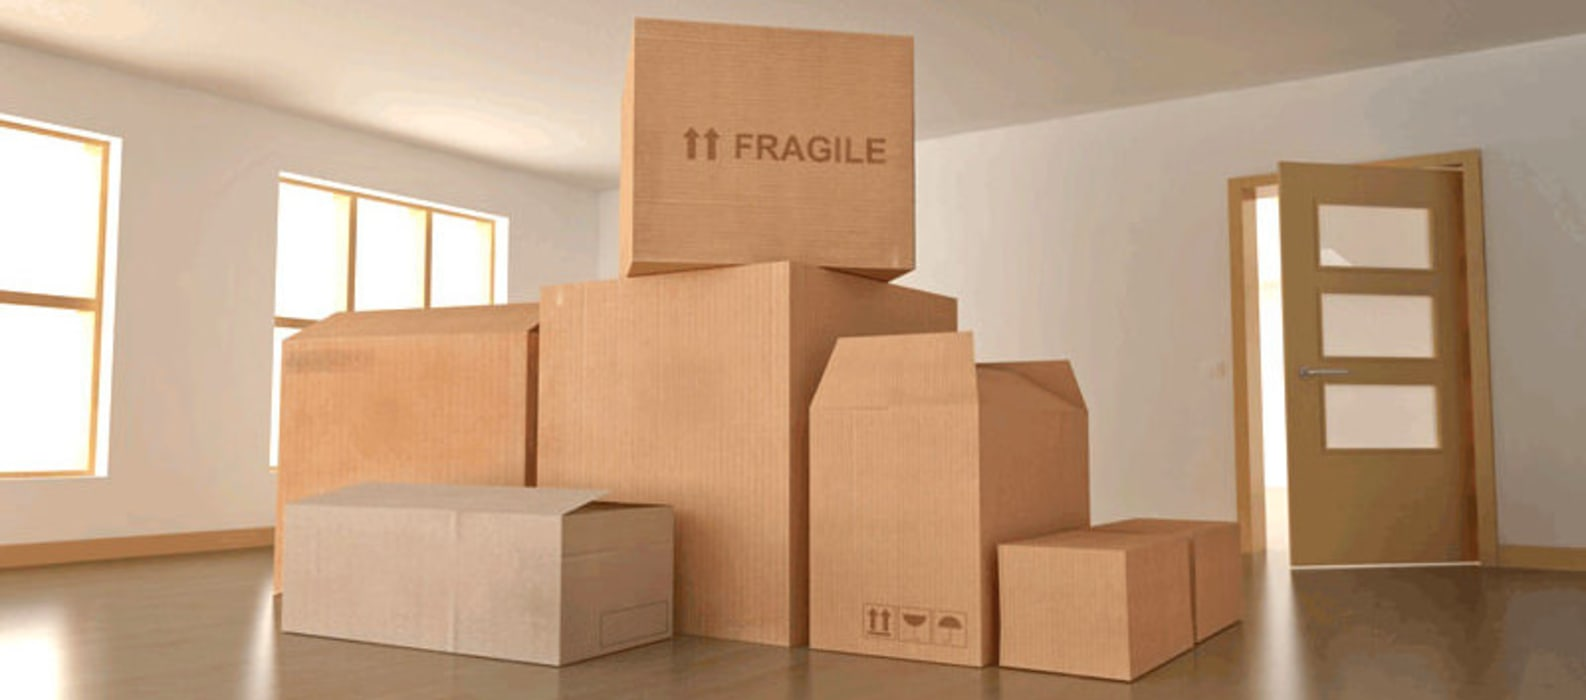 de Iron Horse Relocations - House Moving & Office Furniture Removals Company Cape Town